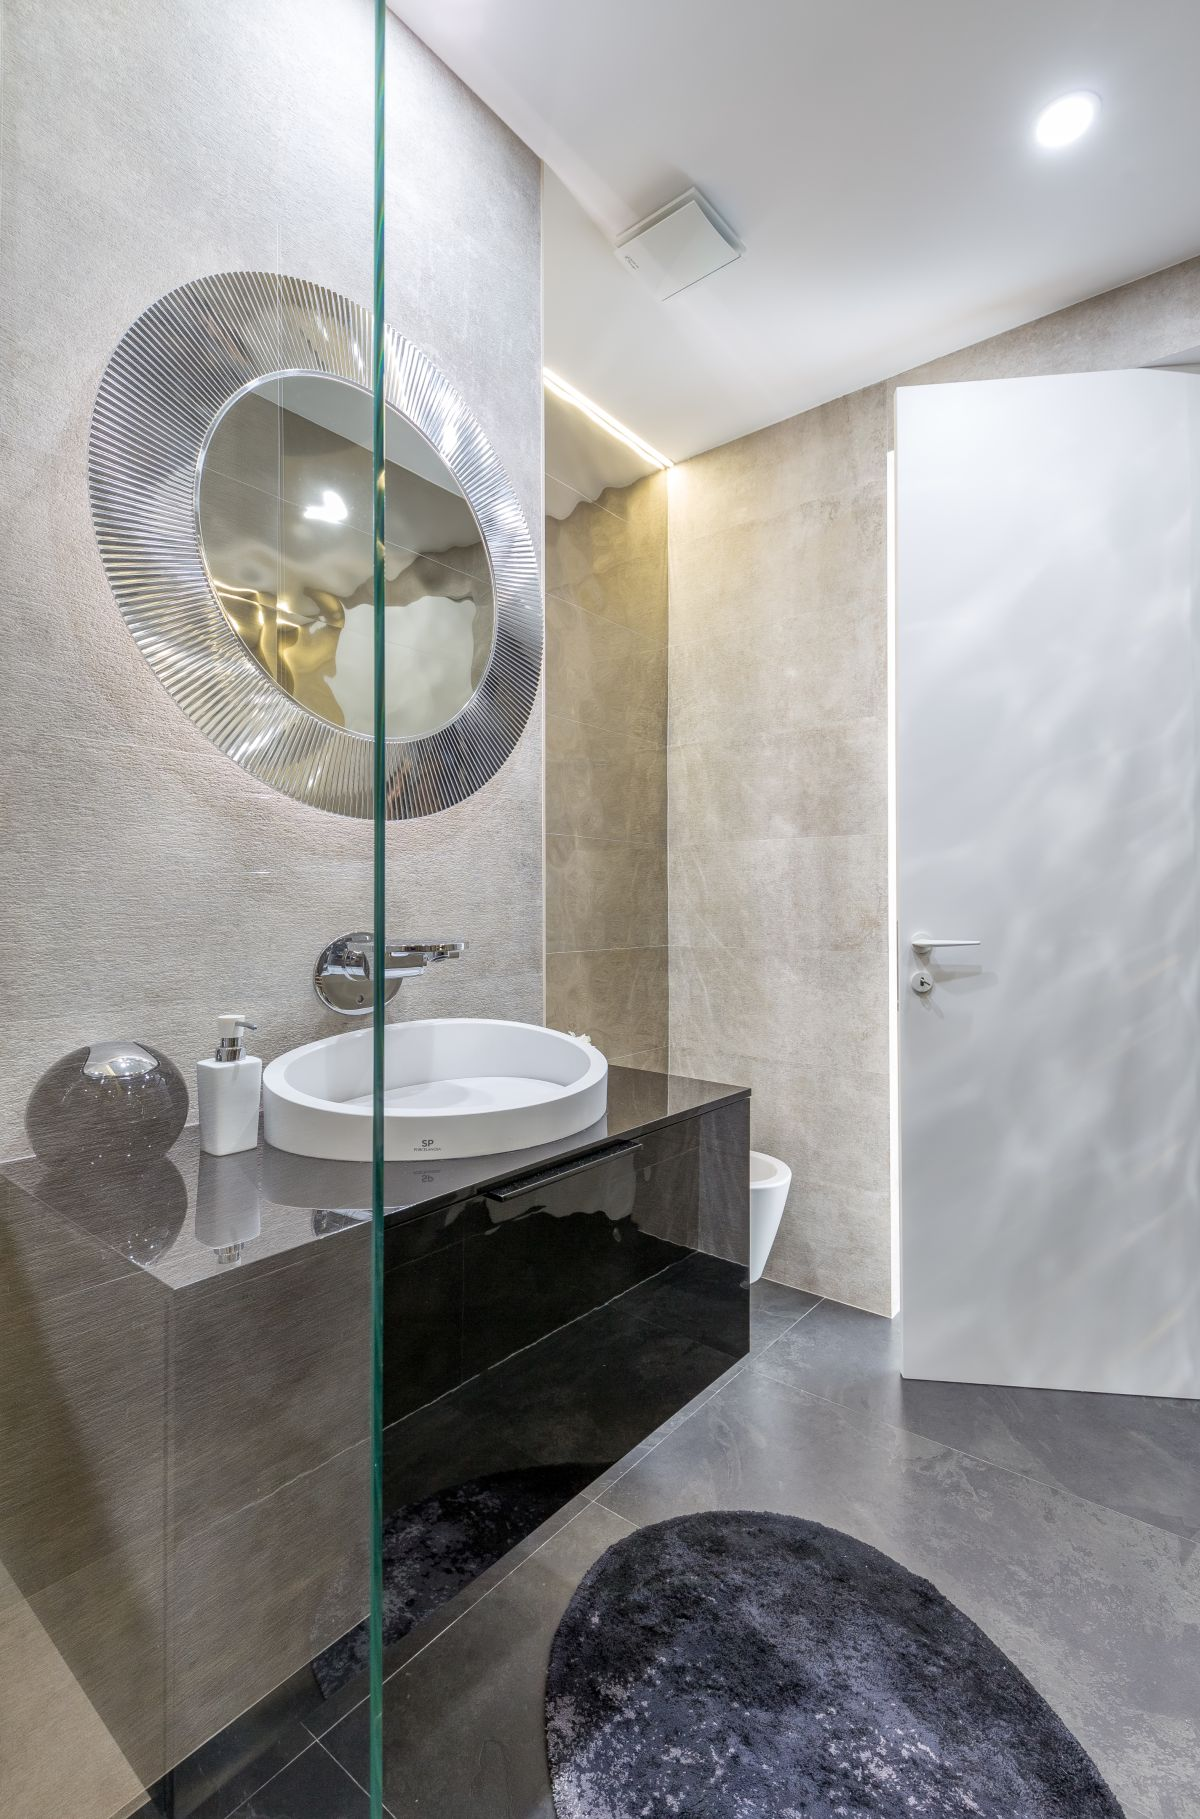 Strategic Use Of Glass Makes A Bathroom Feel Larger.